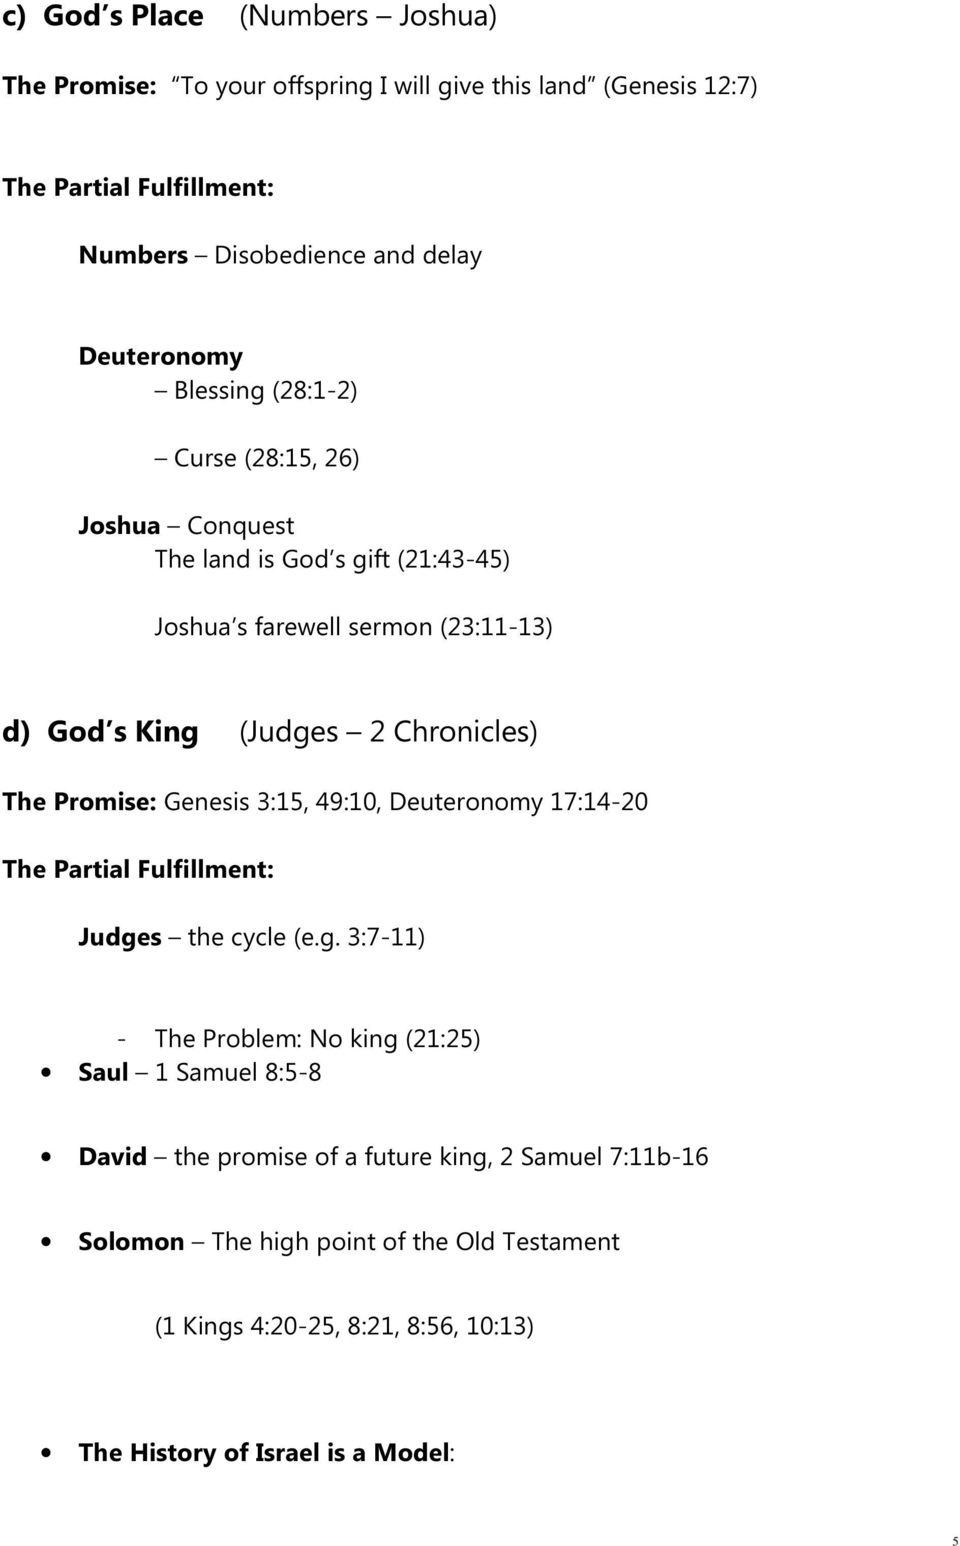 Chronicles) The Promise: Genesis 3:15, 49:10, Deuteronomy 17:14-20 The Partial Fulfillment: Judge